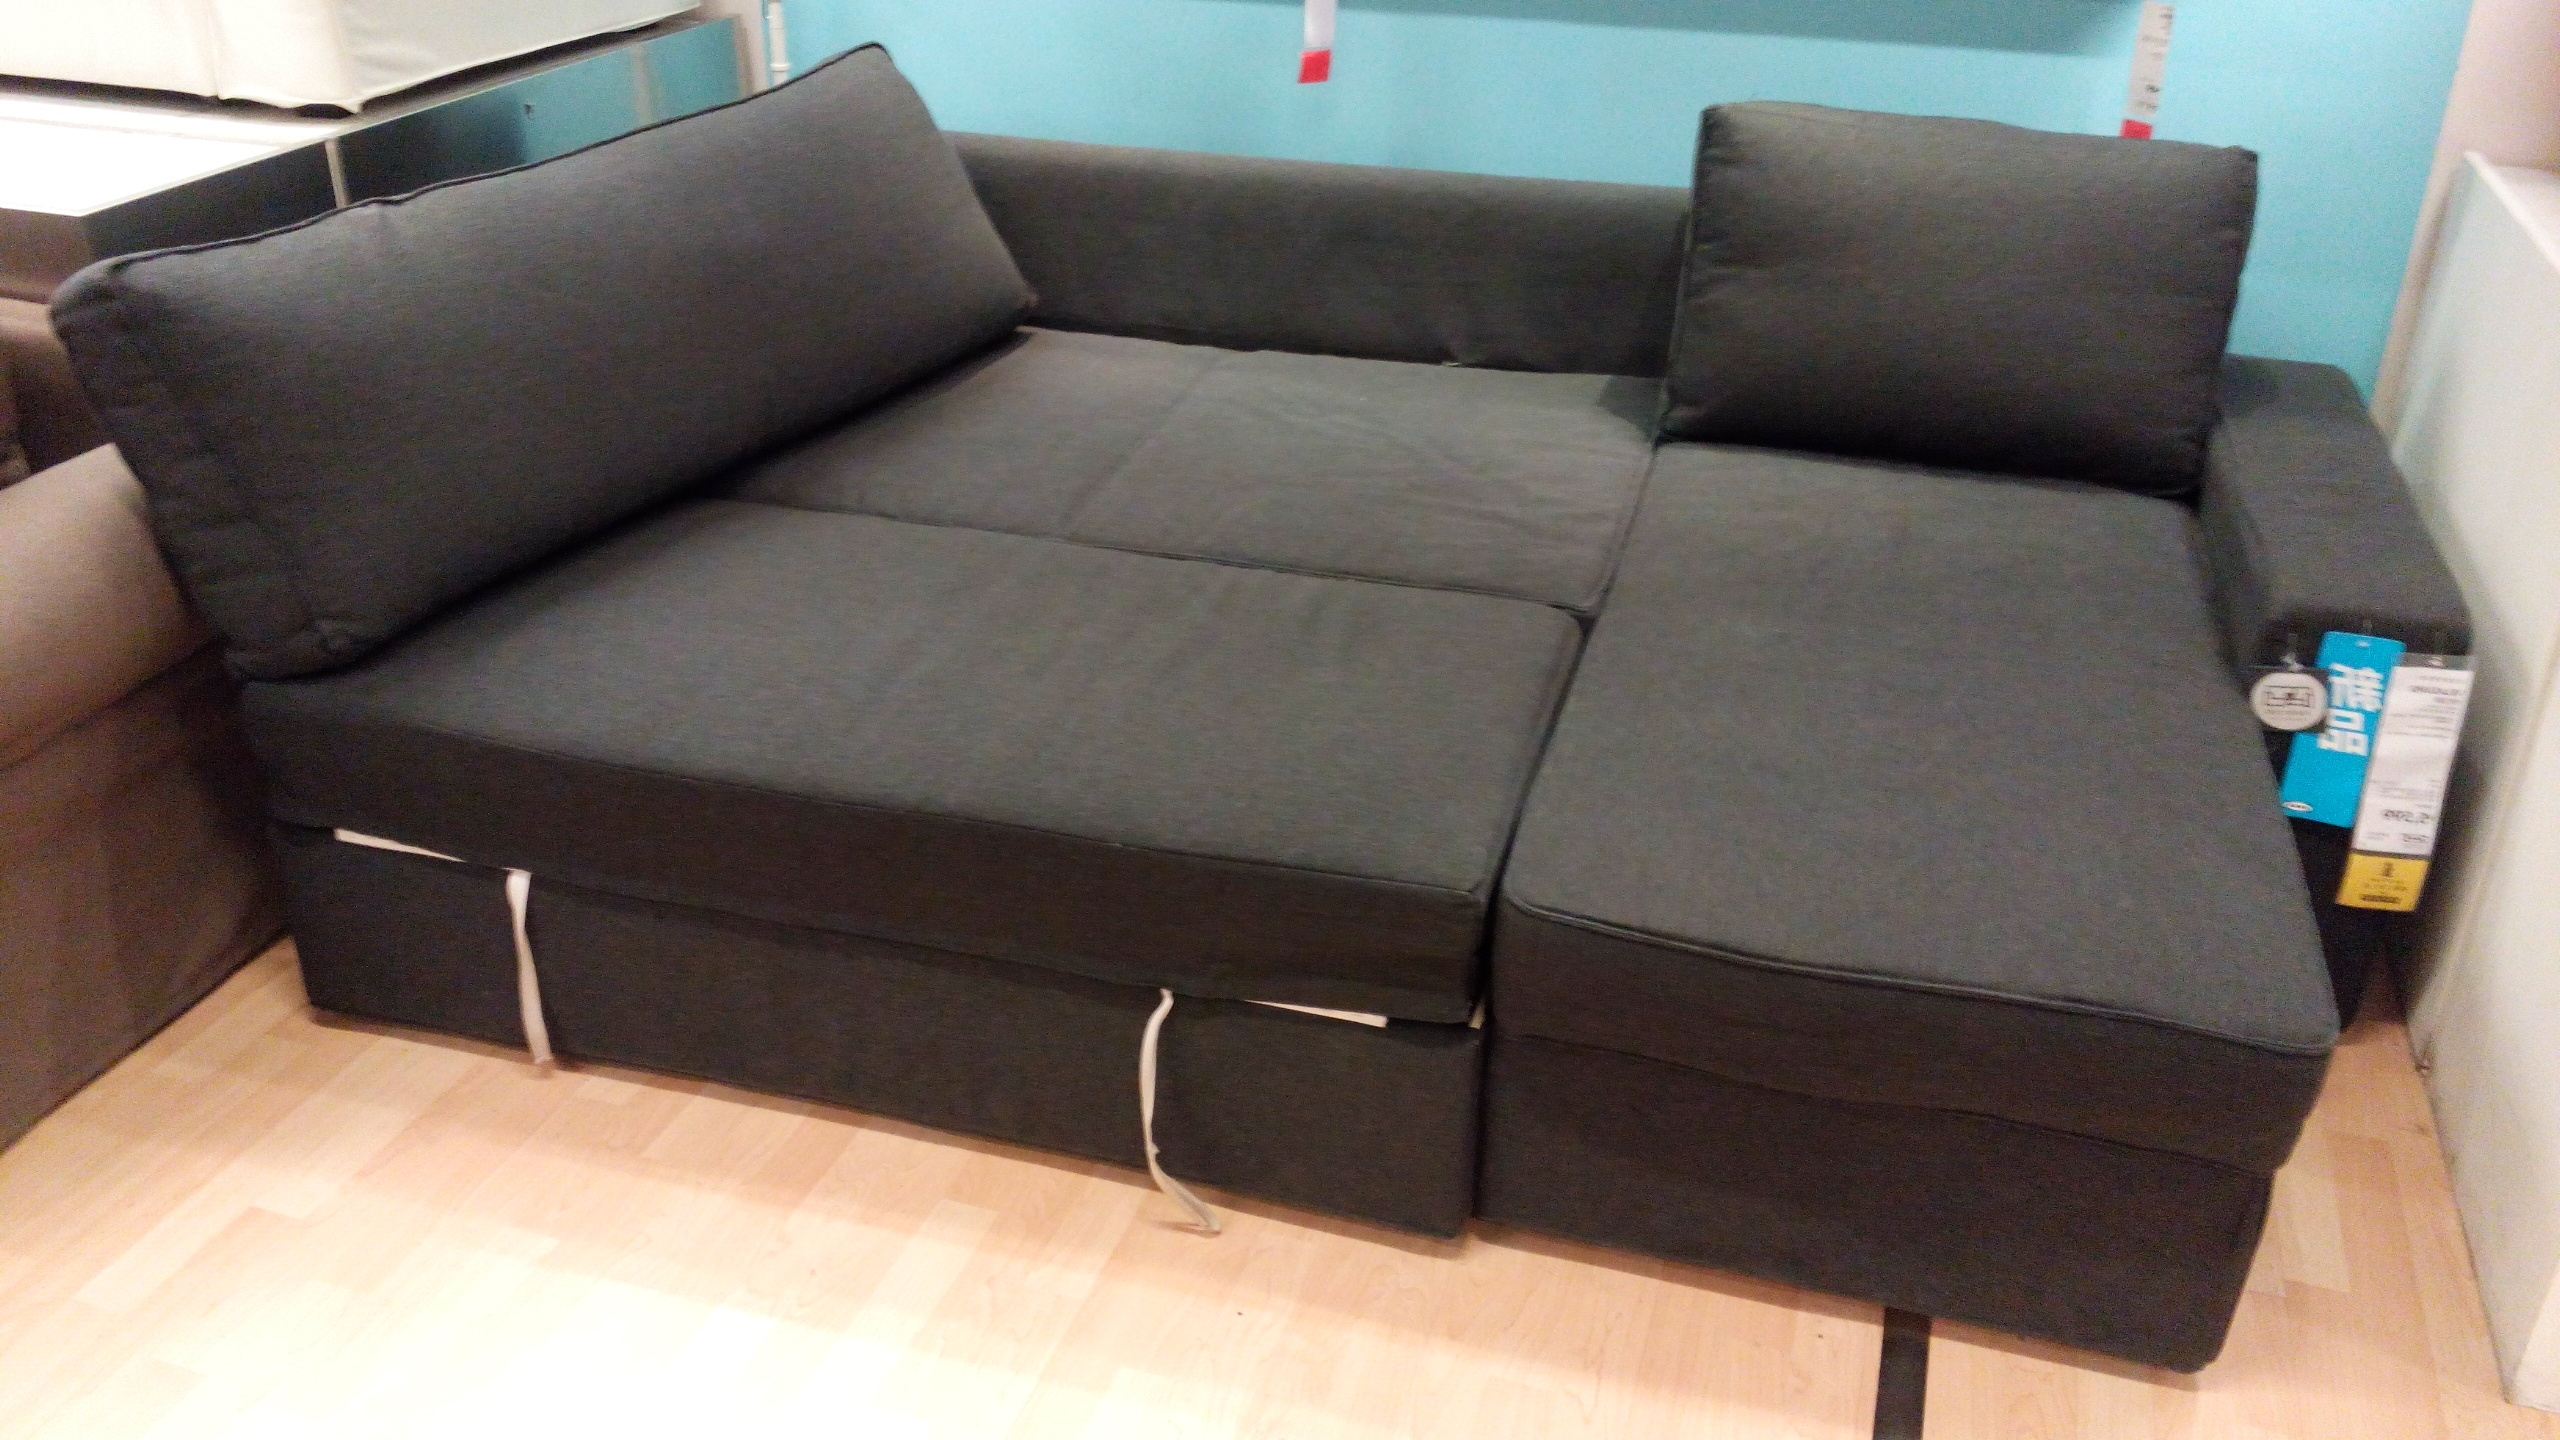 Well Known Ikea Sofa Beds With Chaise Throughout Ikea Vilasund And Backabro Review – Return Of The Sofa Bed Clones! (View 2 of 15)